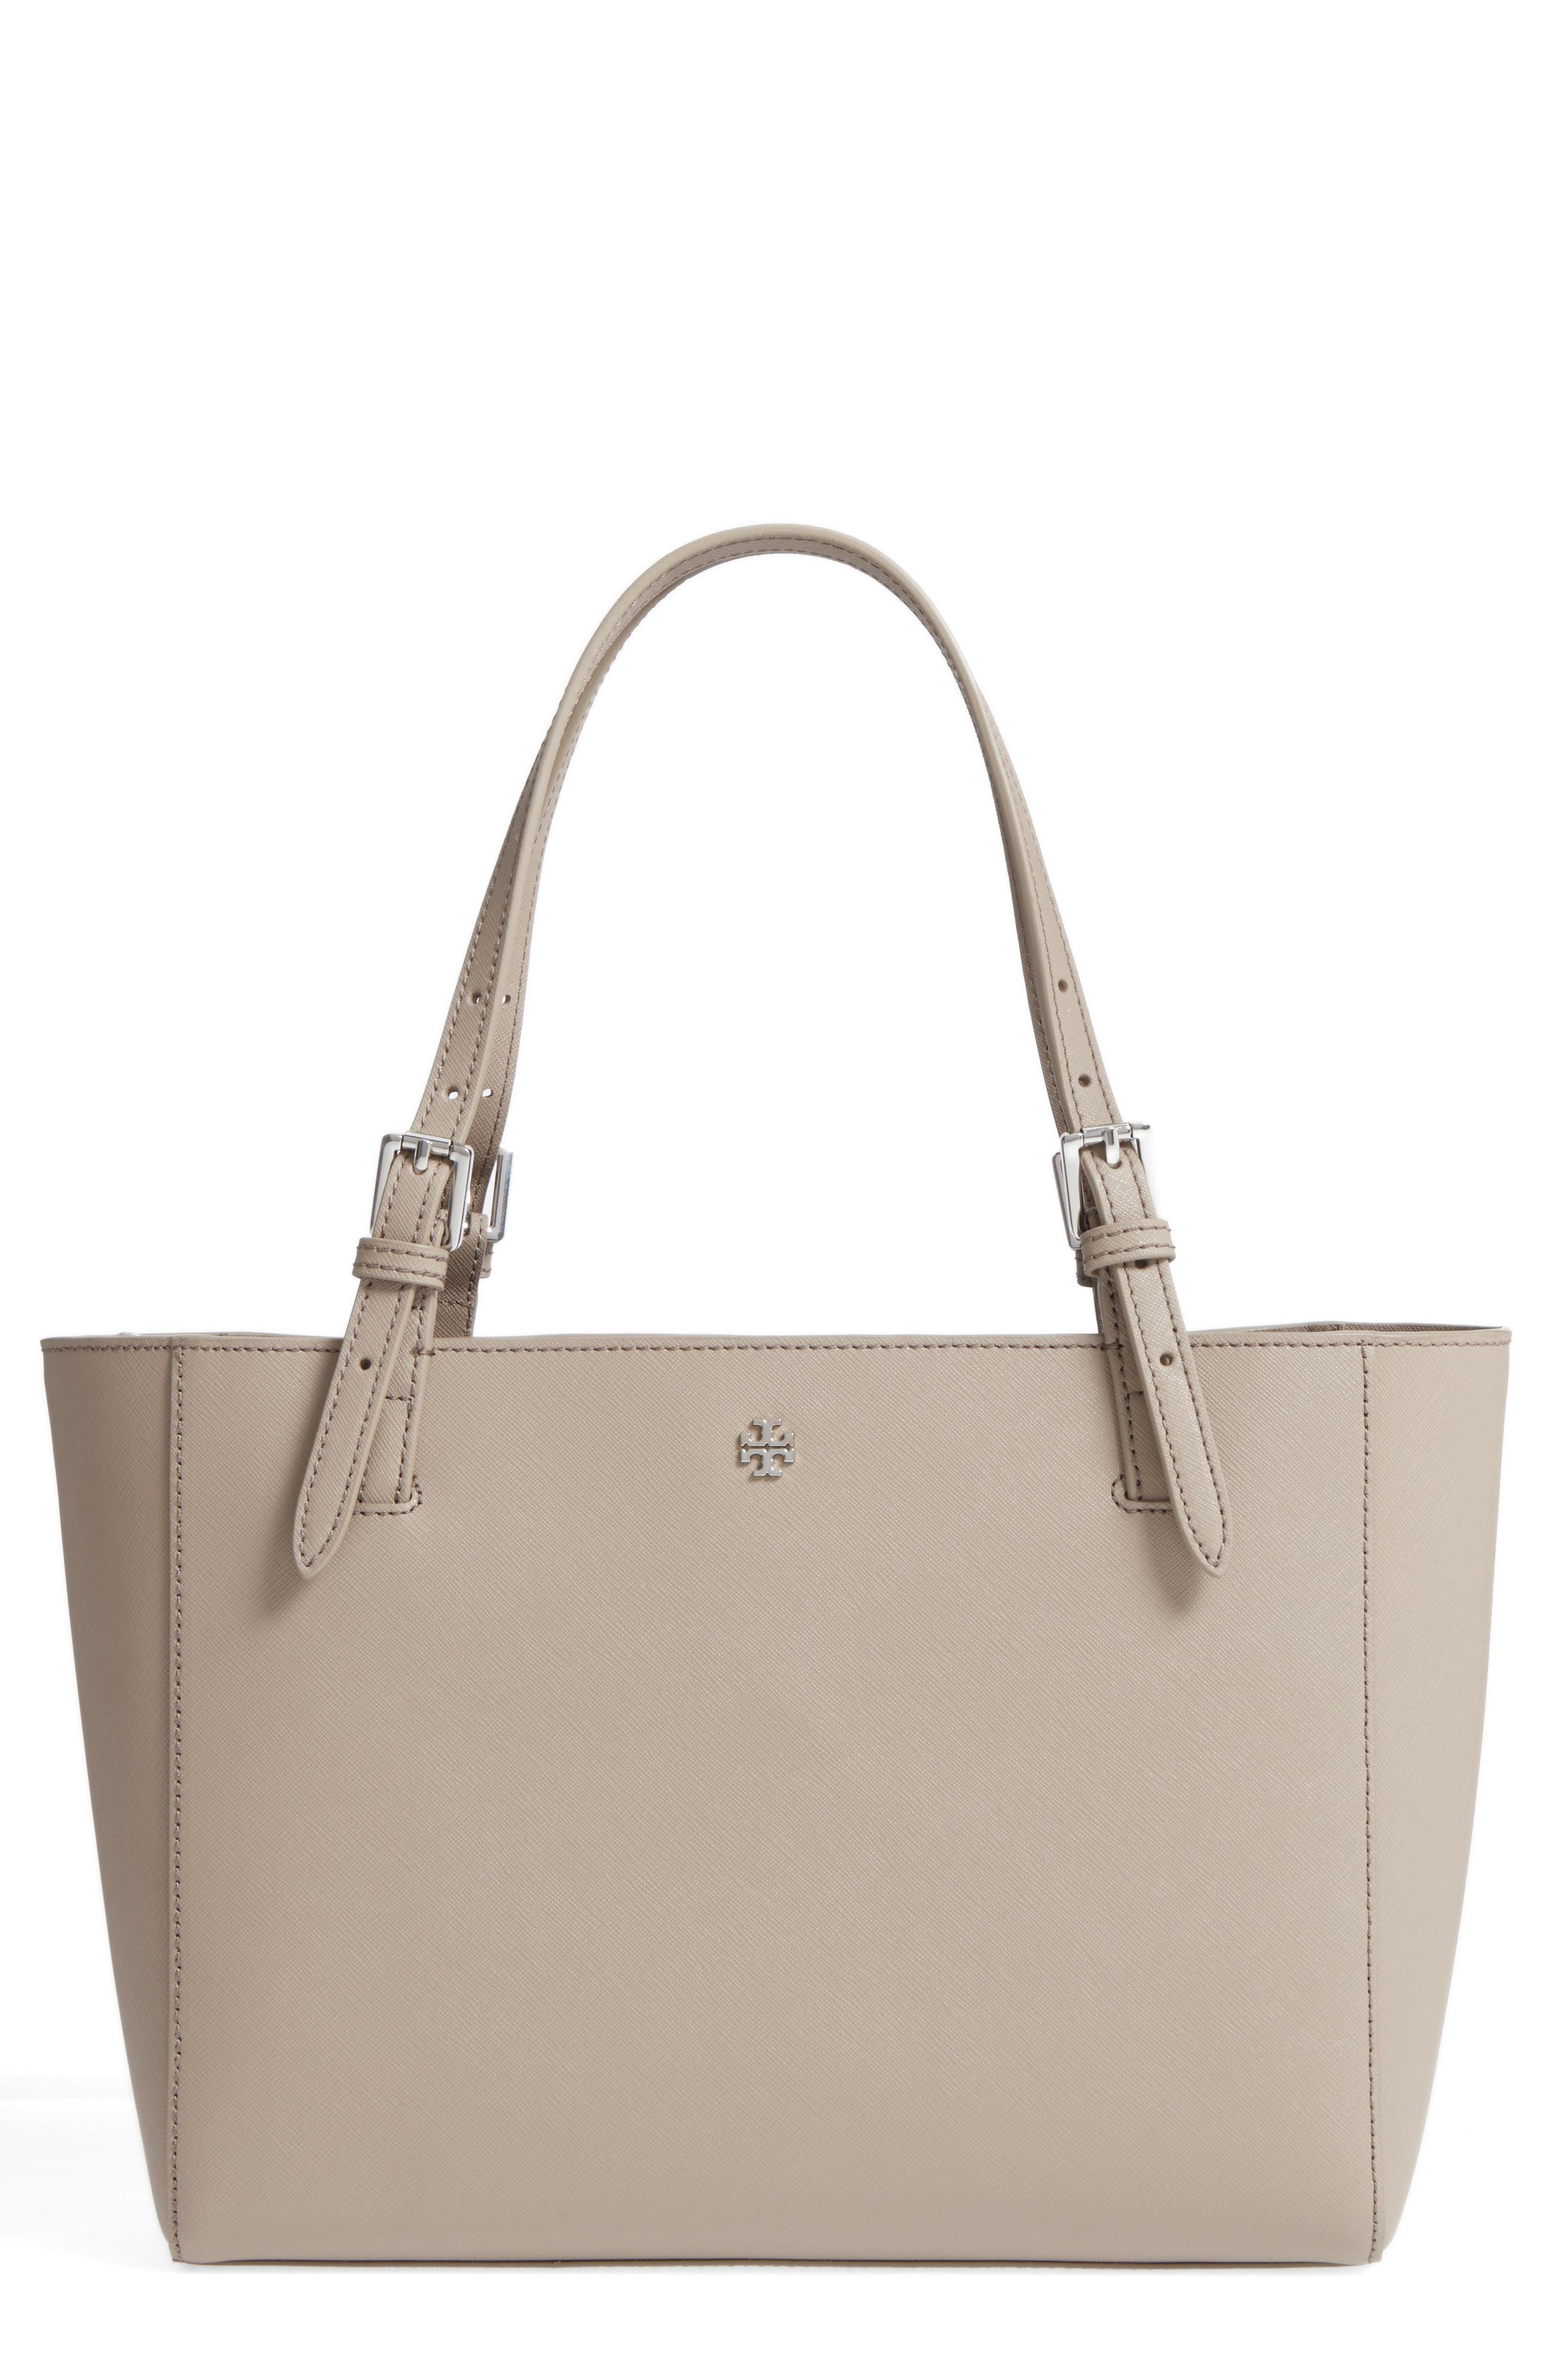 'Small York' Saffiano Leather Buckle Tote,                             Main thumbnail 1, color,                             020